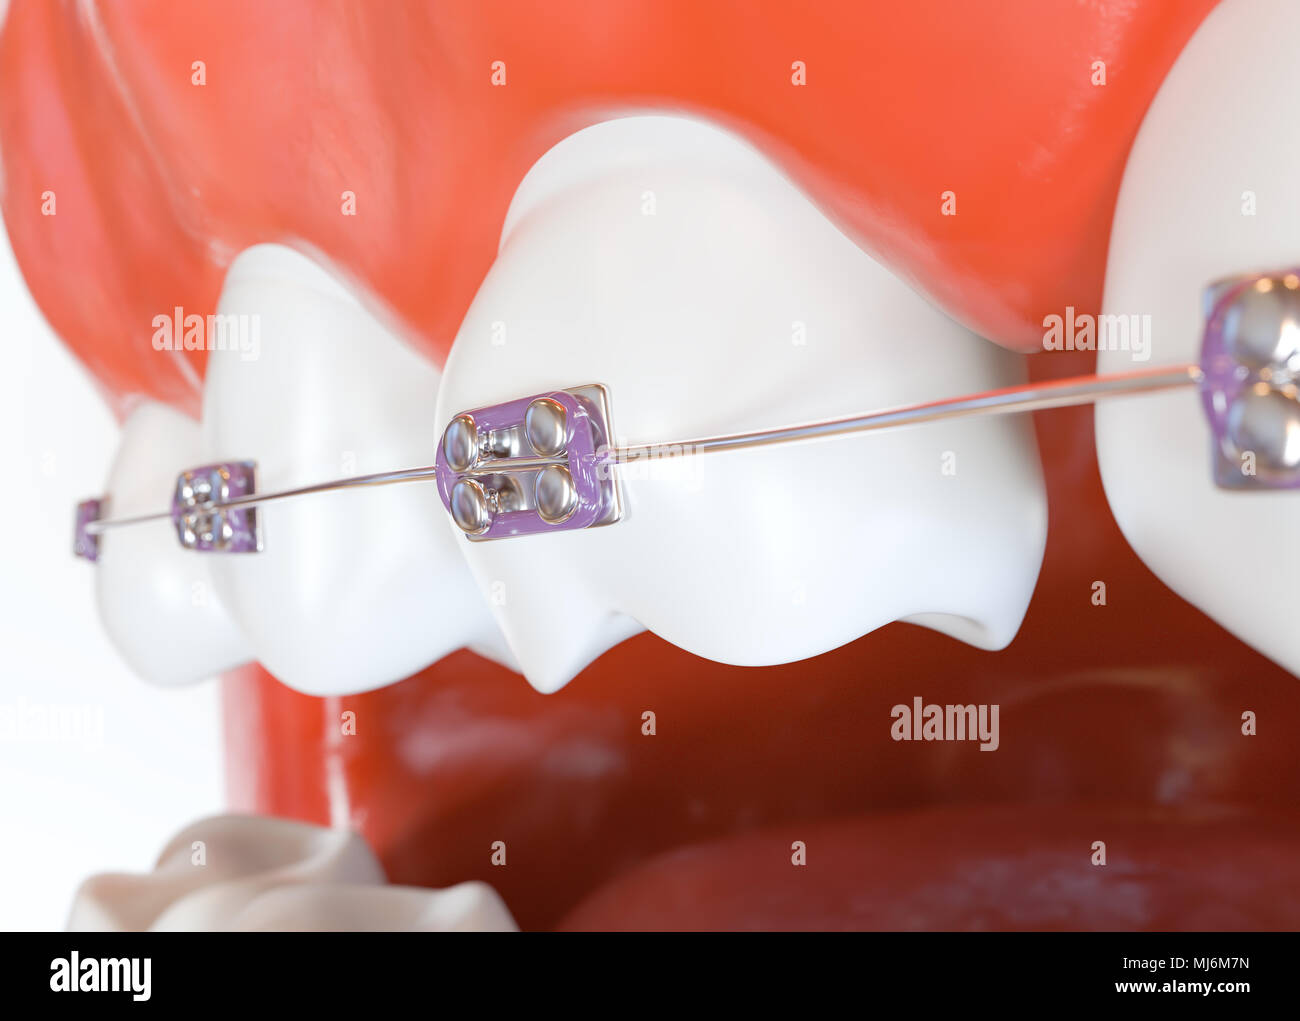 Teeth With Braces Or Brackets In Open Human Mouth 3d Rendering